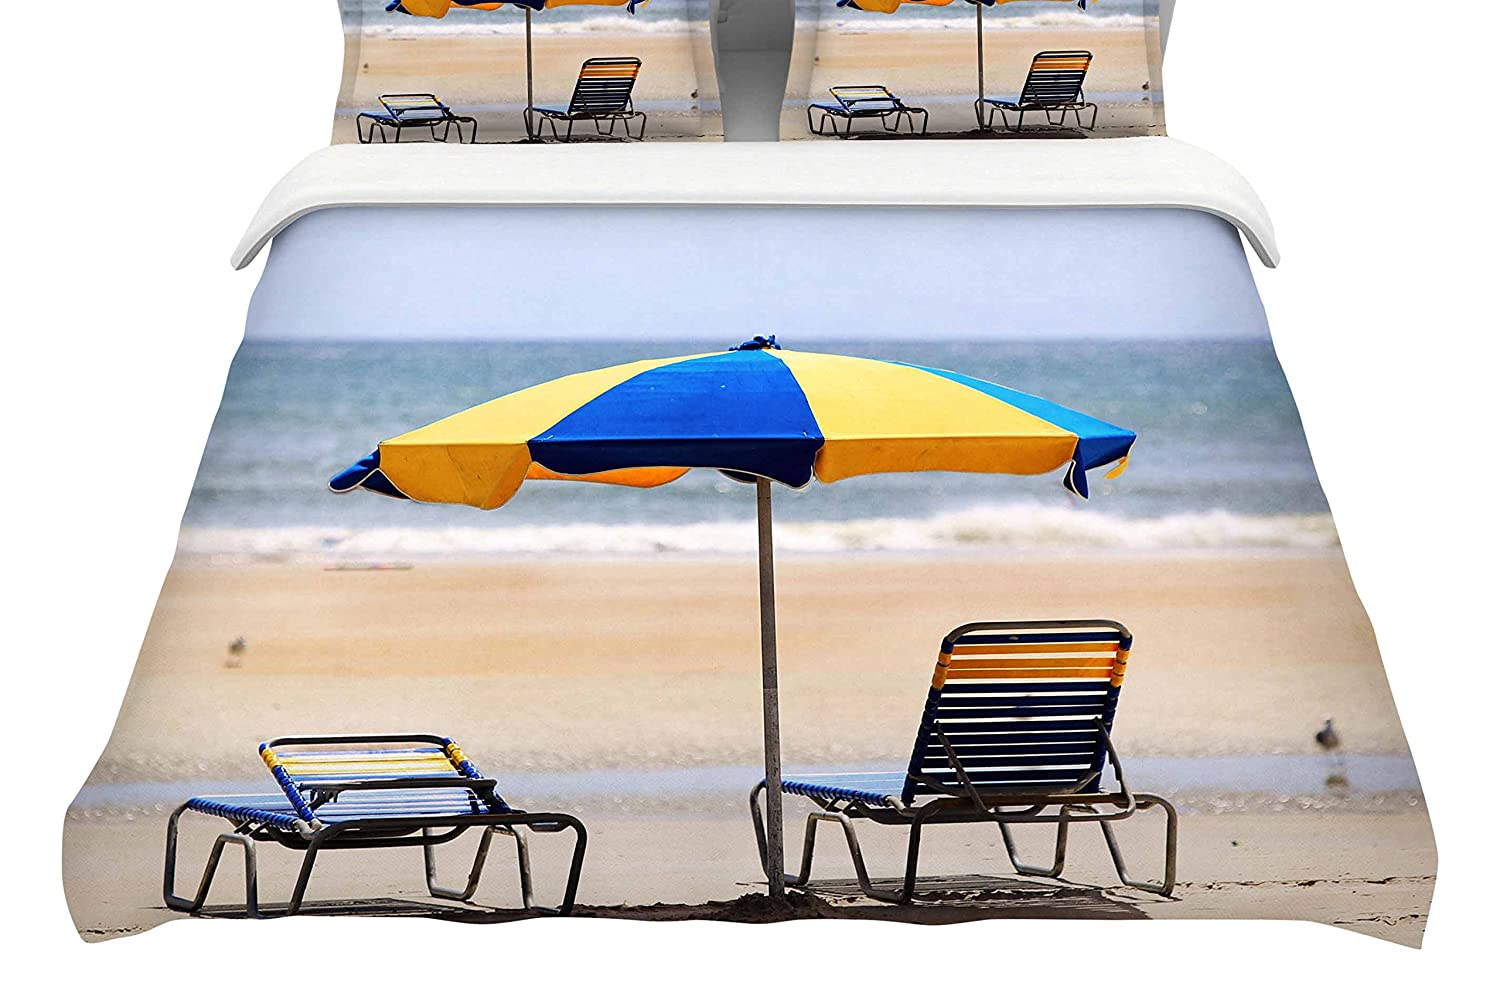 Kess InHouse Angie Turner Blue and Yellow Umbrella Featherweight Queen Duvet Cover, 88 x 88,